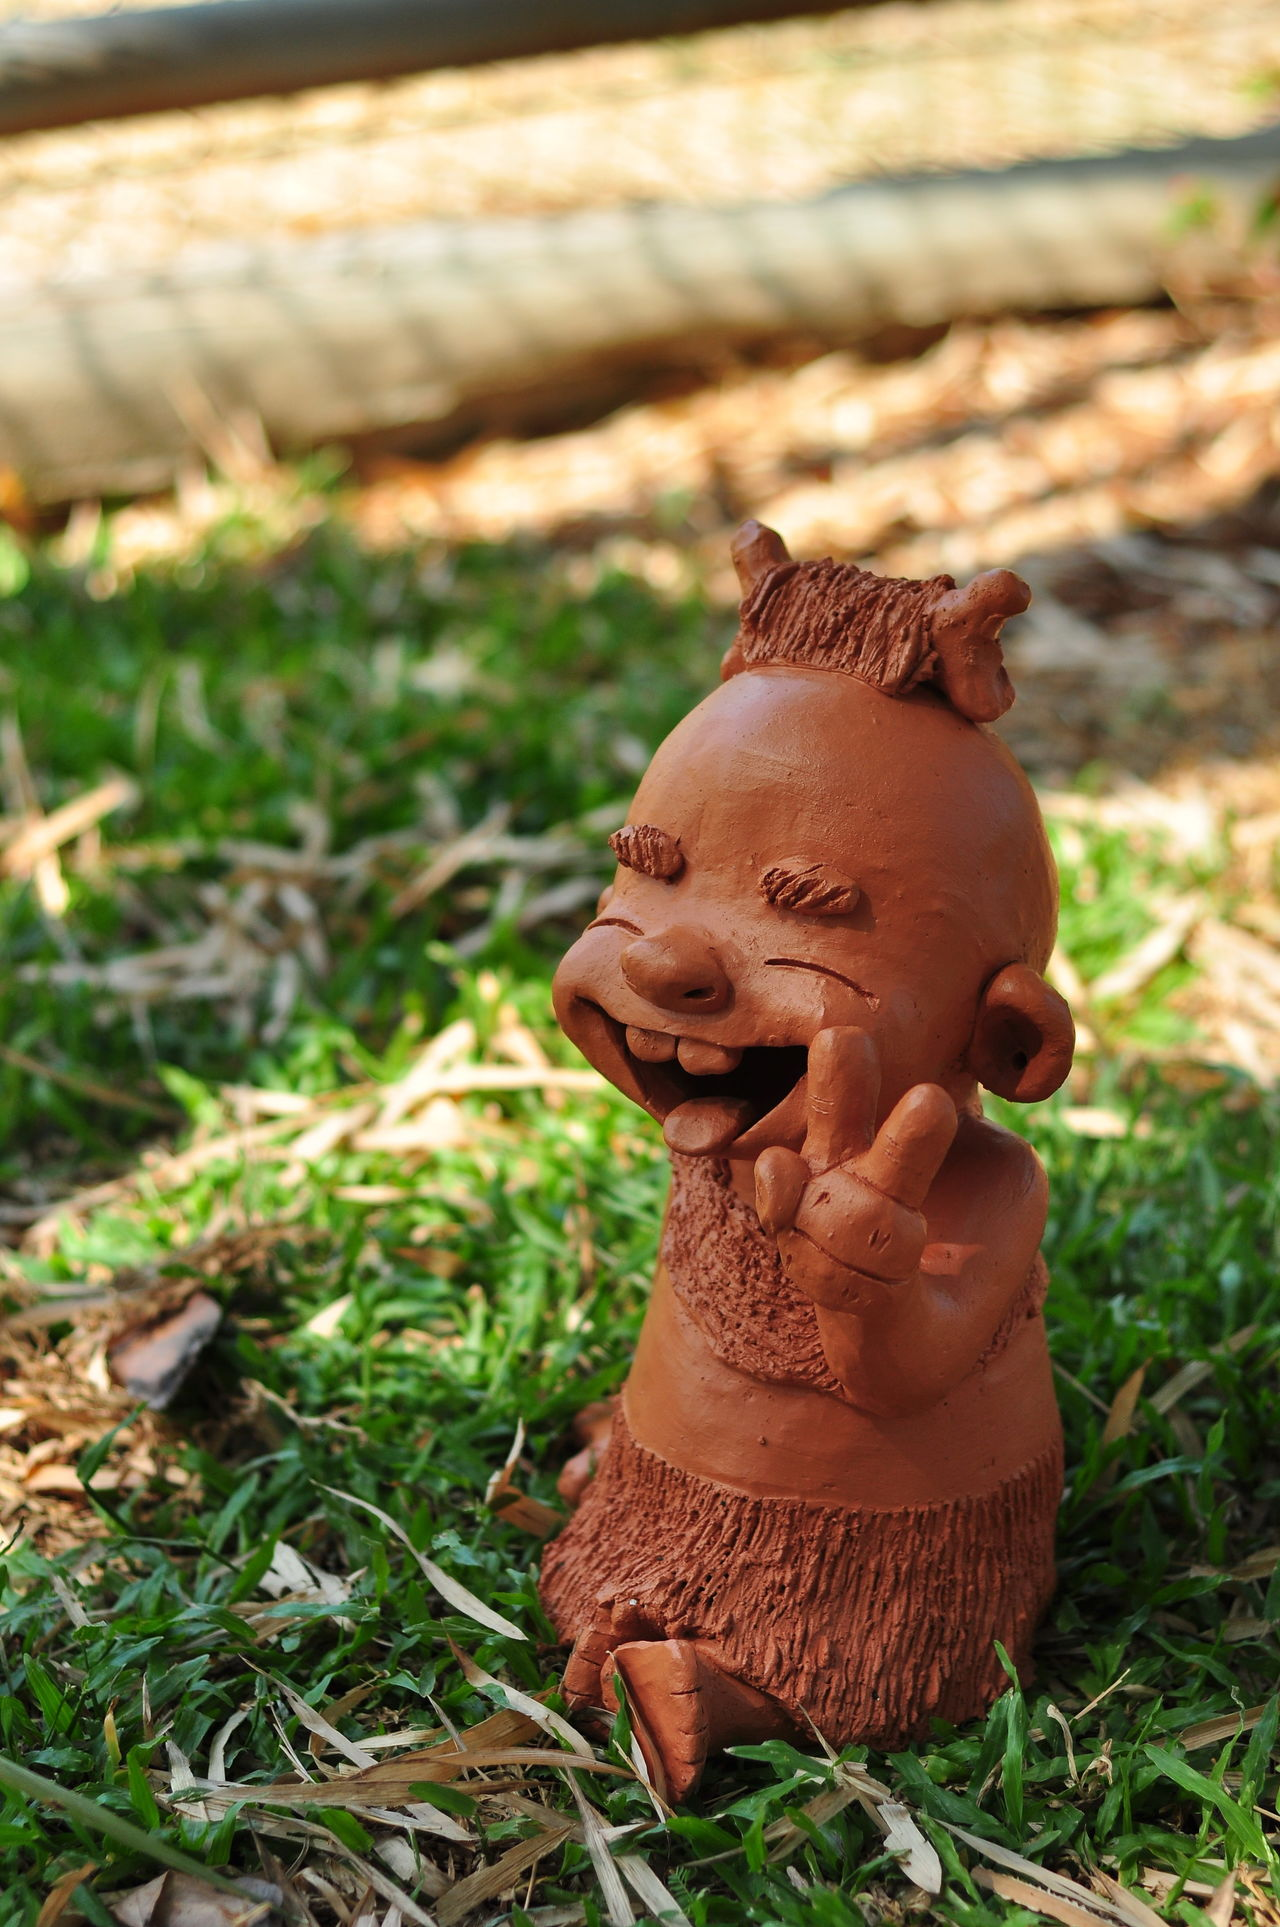 The tribal children's clay smiles cheerfully. Allright Barbarian Child Close-up Cute Day Earthenware Field Fingers Glad Grass Have Fun Human Representation Jovial Kid Laugh No People Outdoors Sculpture Smile Statue Sunlight Teeth Tribe